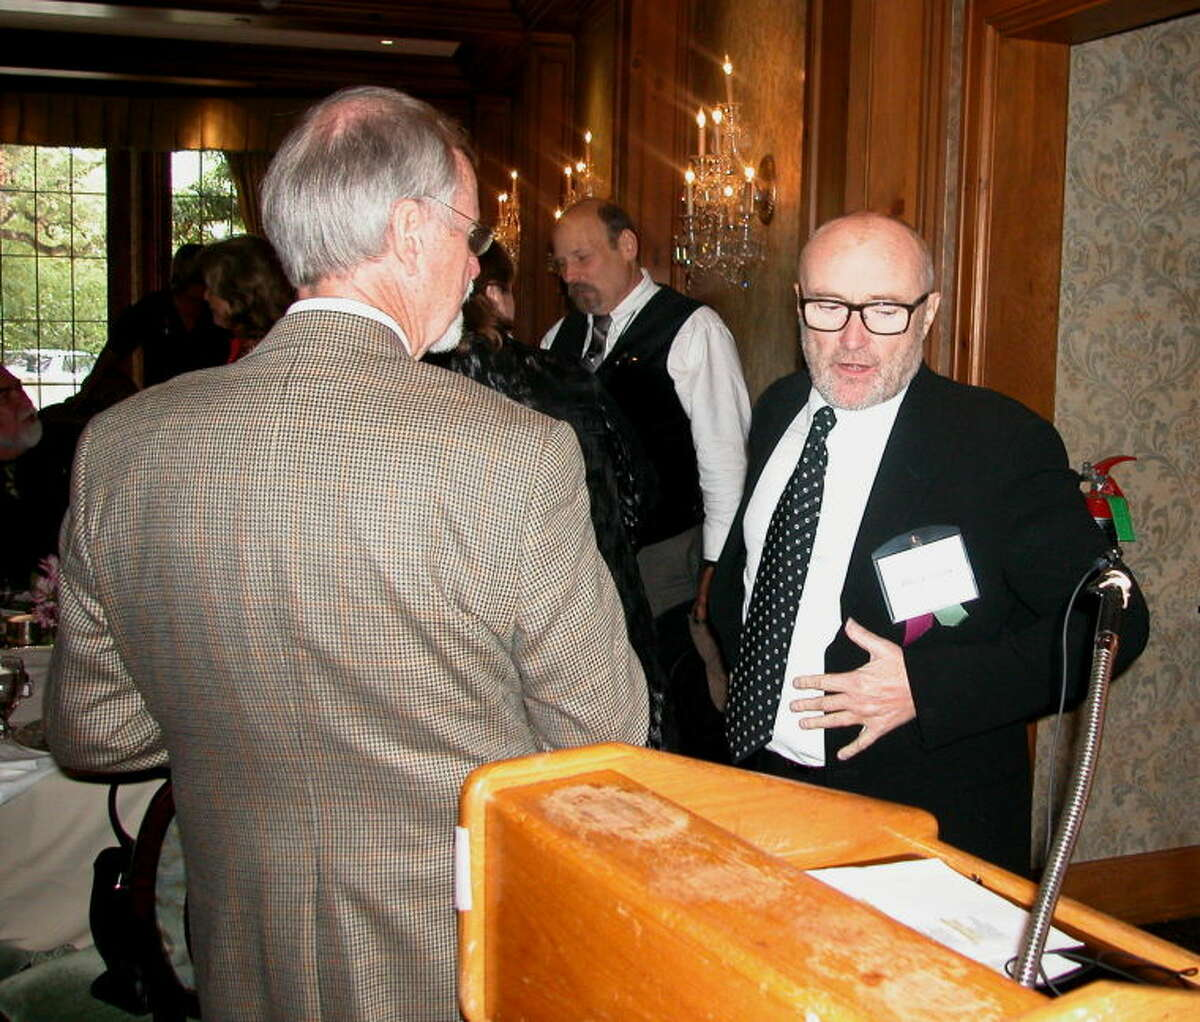 """Singer Phil Collins, right, was among authors who were honored by the San Antonio Conservation at a luncheon Friday in San Antonio. Collins' book, """"The Alamo and Beyond: A Collector's Journey,"""" was published March 6, 2012 -- the 176th anniversary of the day the Alamo fell."""